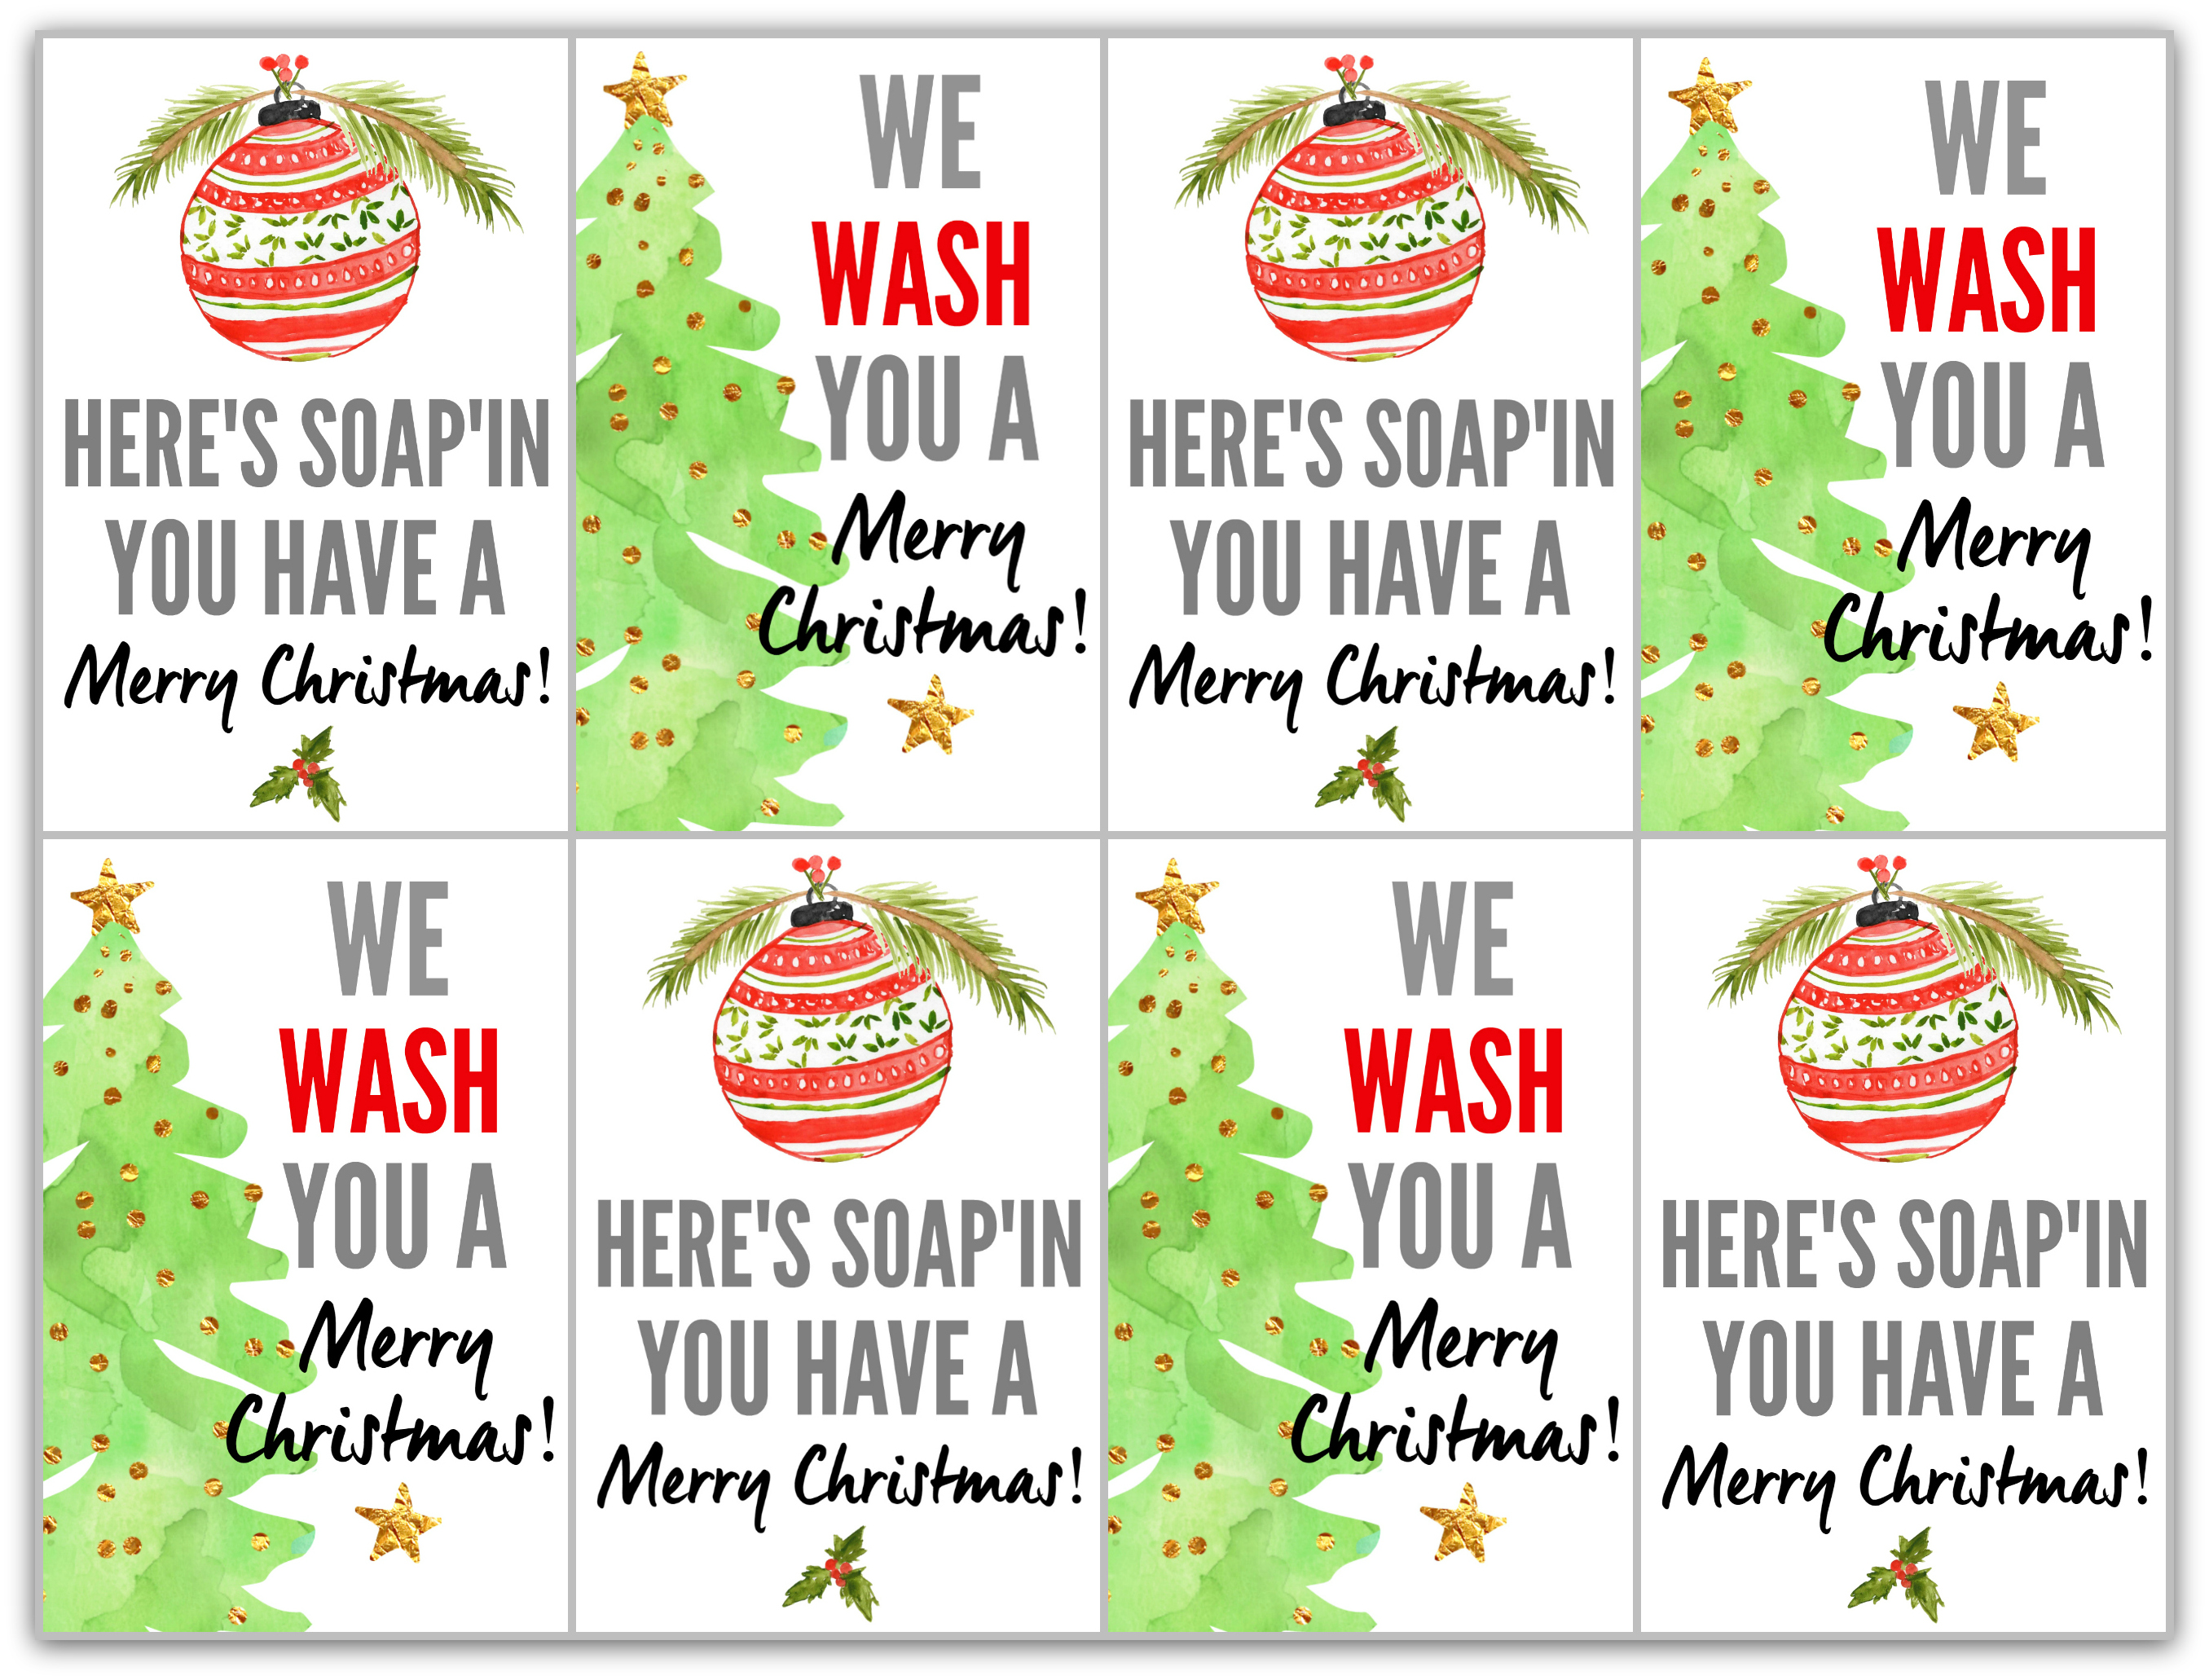 picture relating to We Wash You a Merry Christmas Free Printable titled Do-it-yourself Hostess Present (Vacation Soaps with No cost Printable Tags